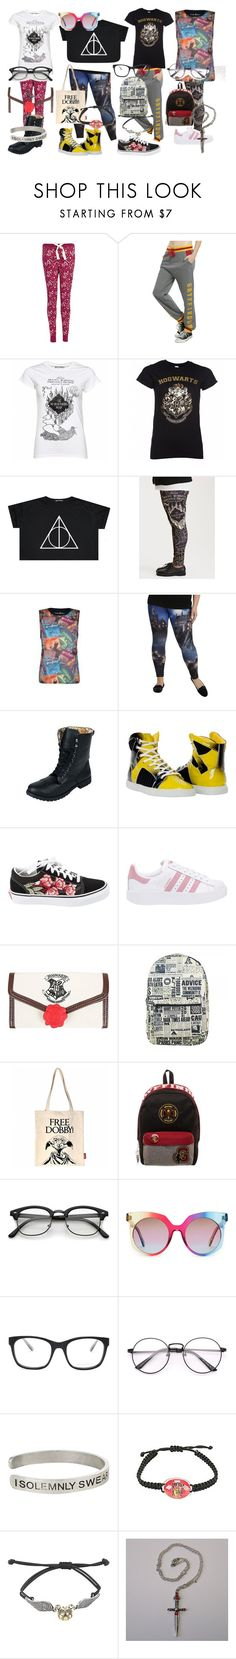 """Teen Styles 14: Sammie, Kelly, Autumn, and Me"" by patiencecat on Polyvore featuring Warner Bros., Torrid, Vans, adidas Originals, MCM, Bottega Veneta, glasses and teenstyles"